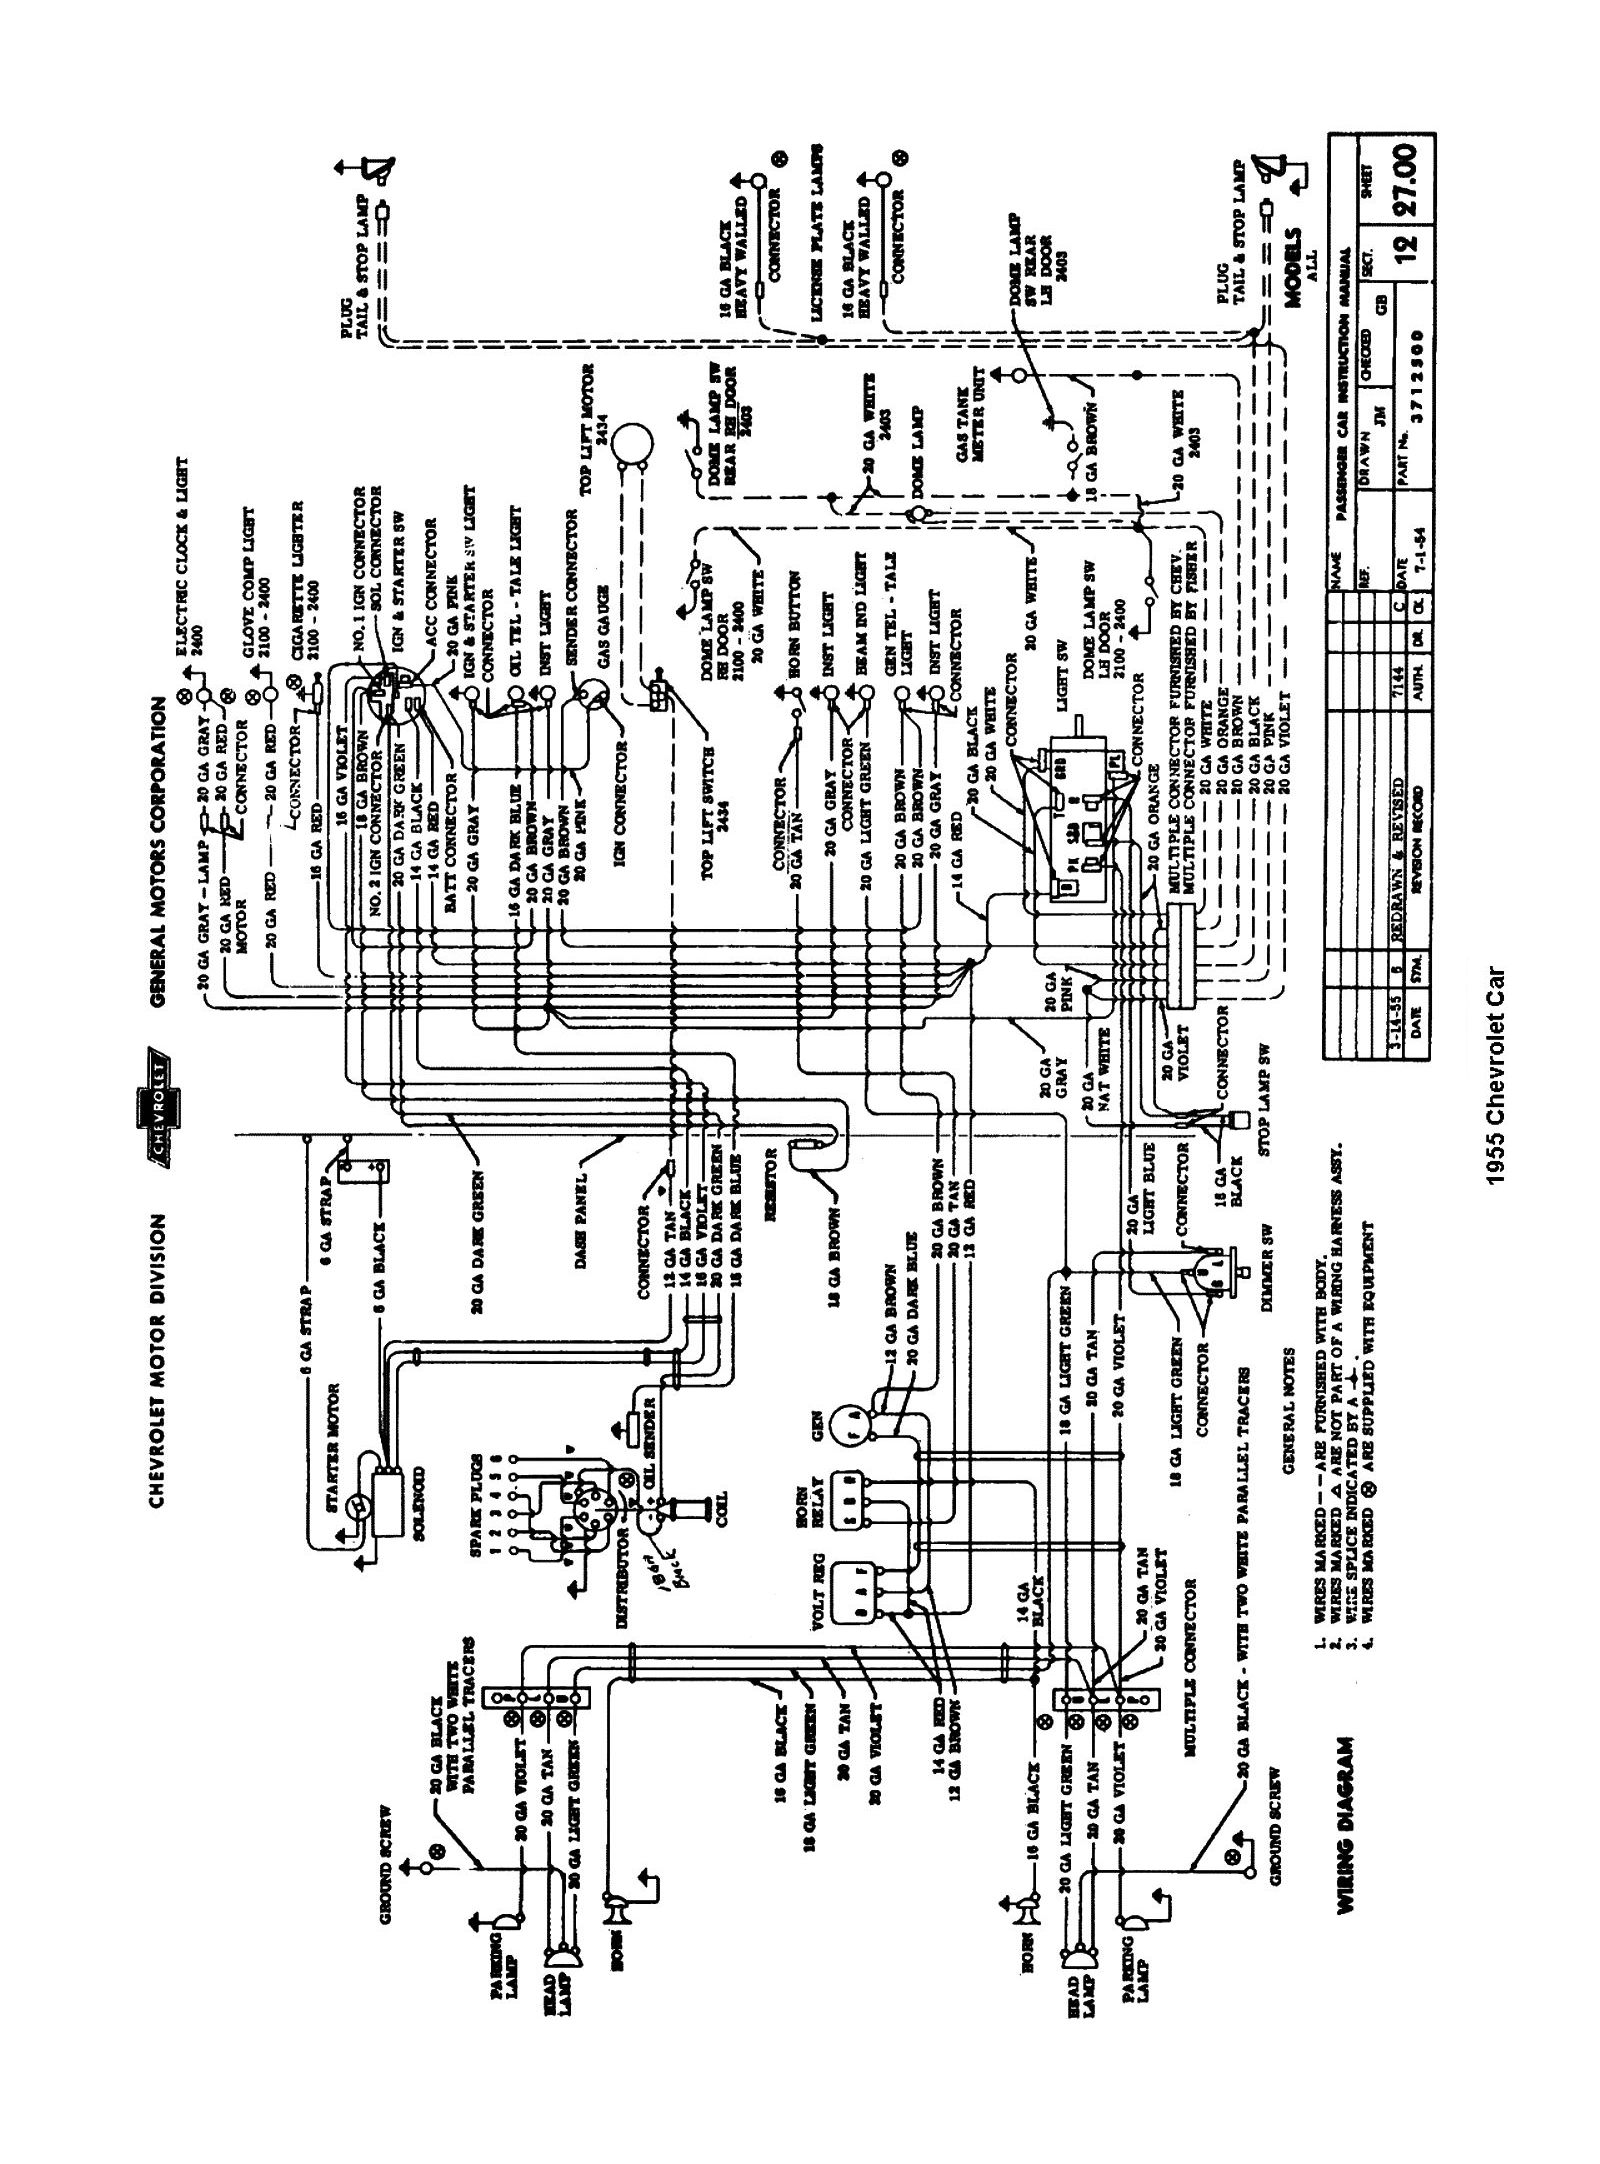 wiring diagram for 1955 chevy bel air new wiring diagrams 55 bel air wiring diagram list of